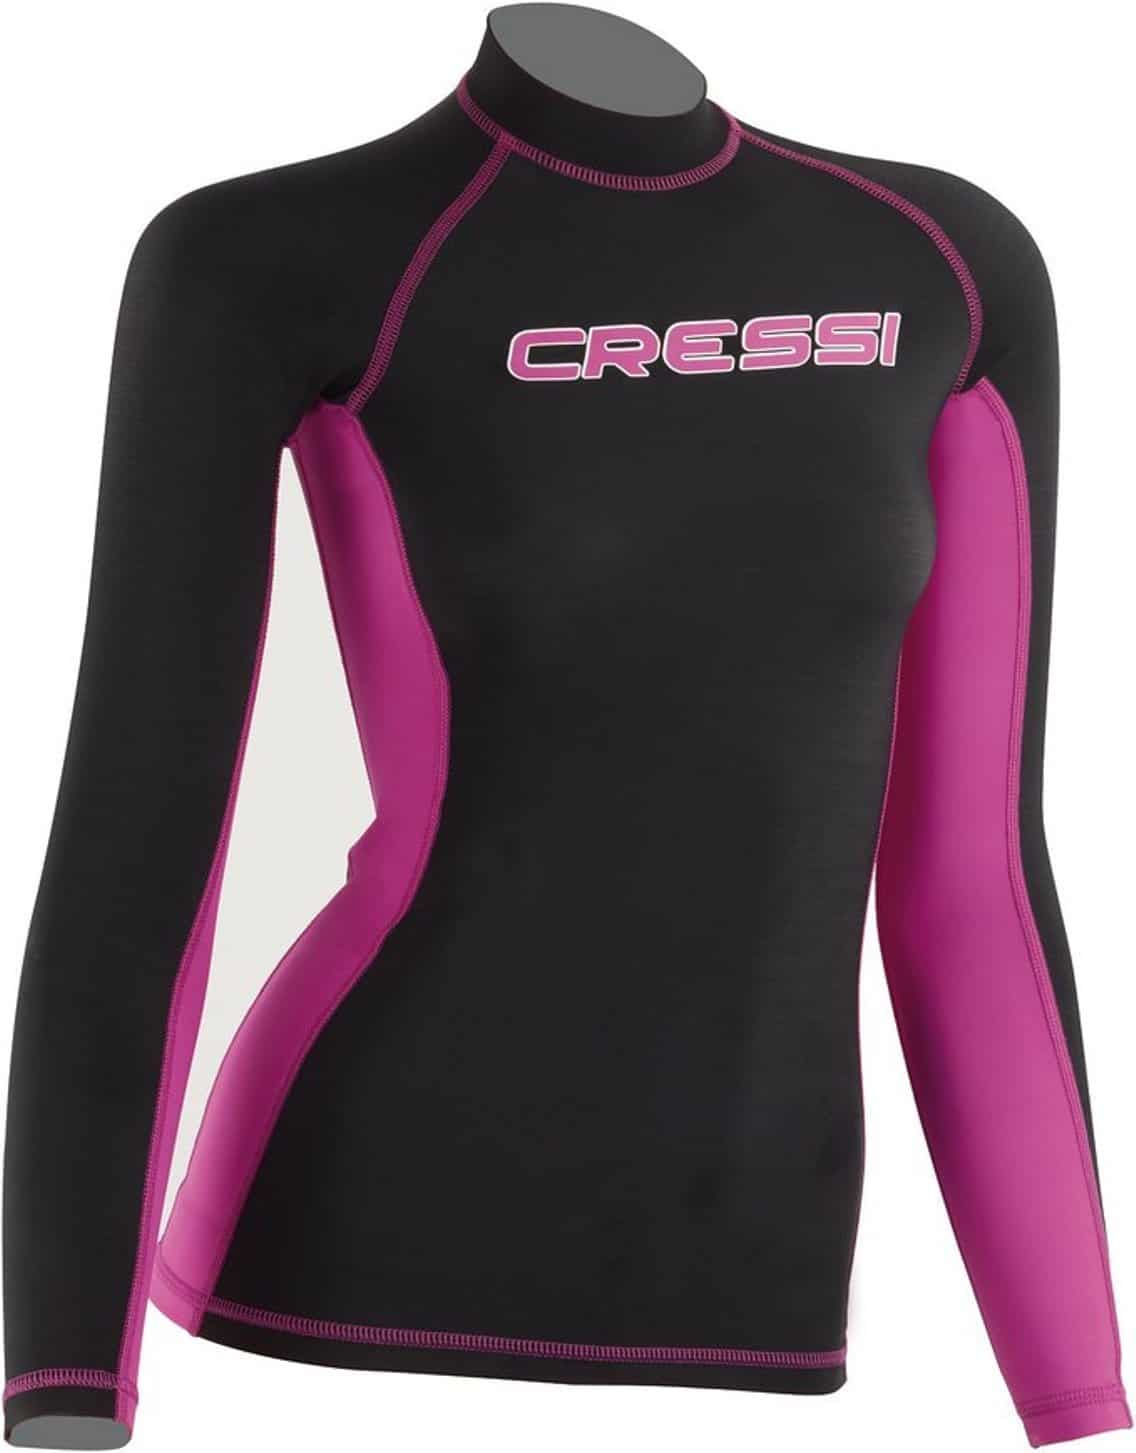 Cressi Women's Long Sleeve Rash Guard For Swimming, Surfing, Diving